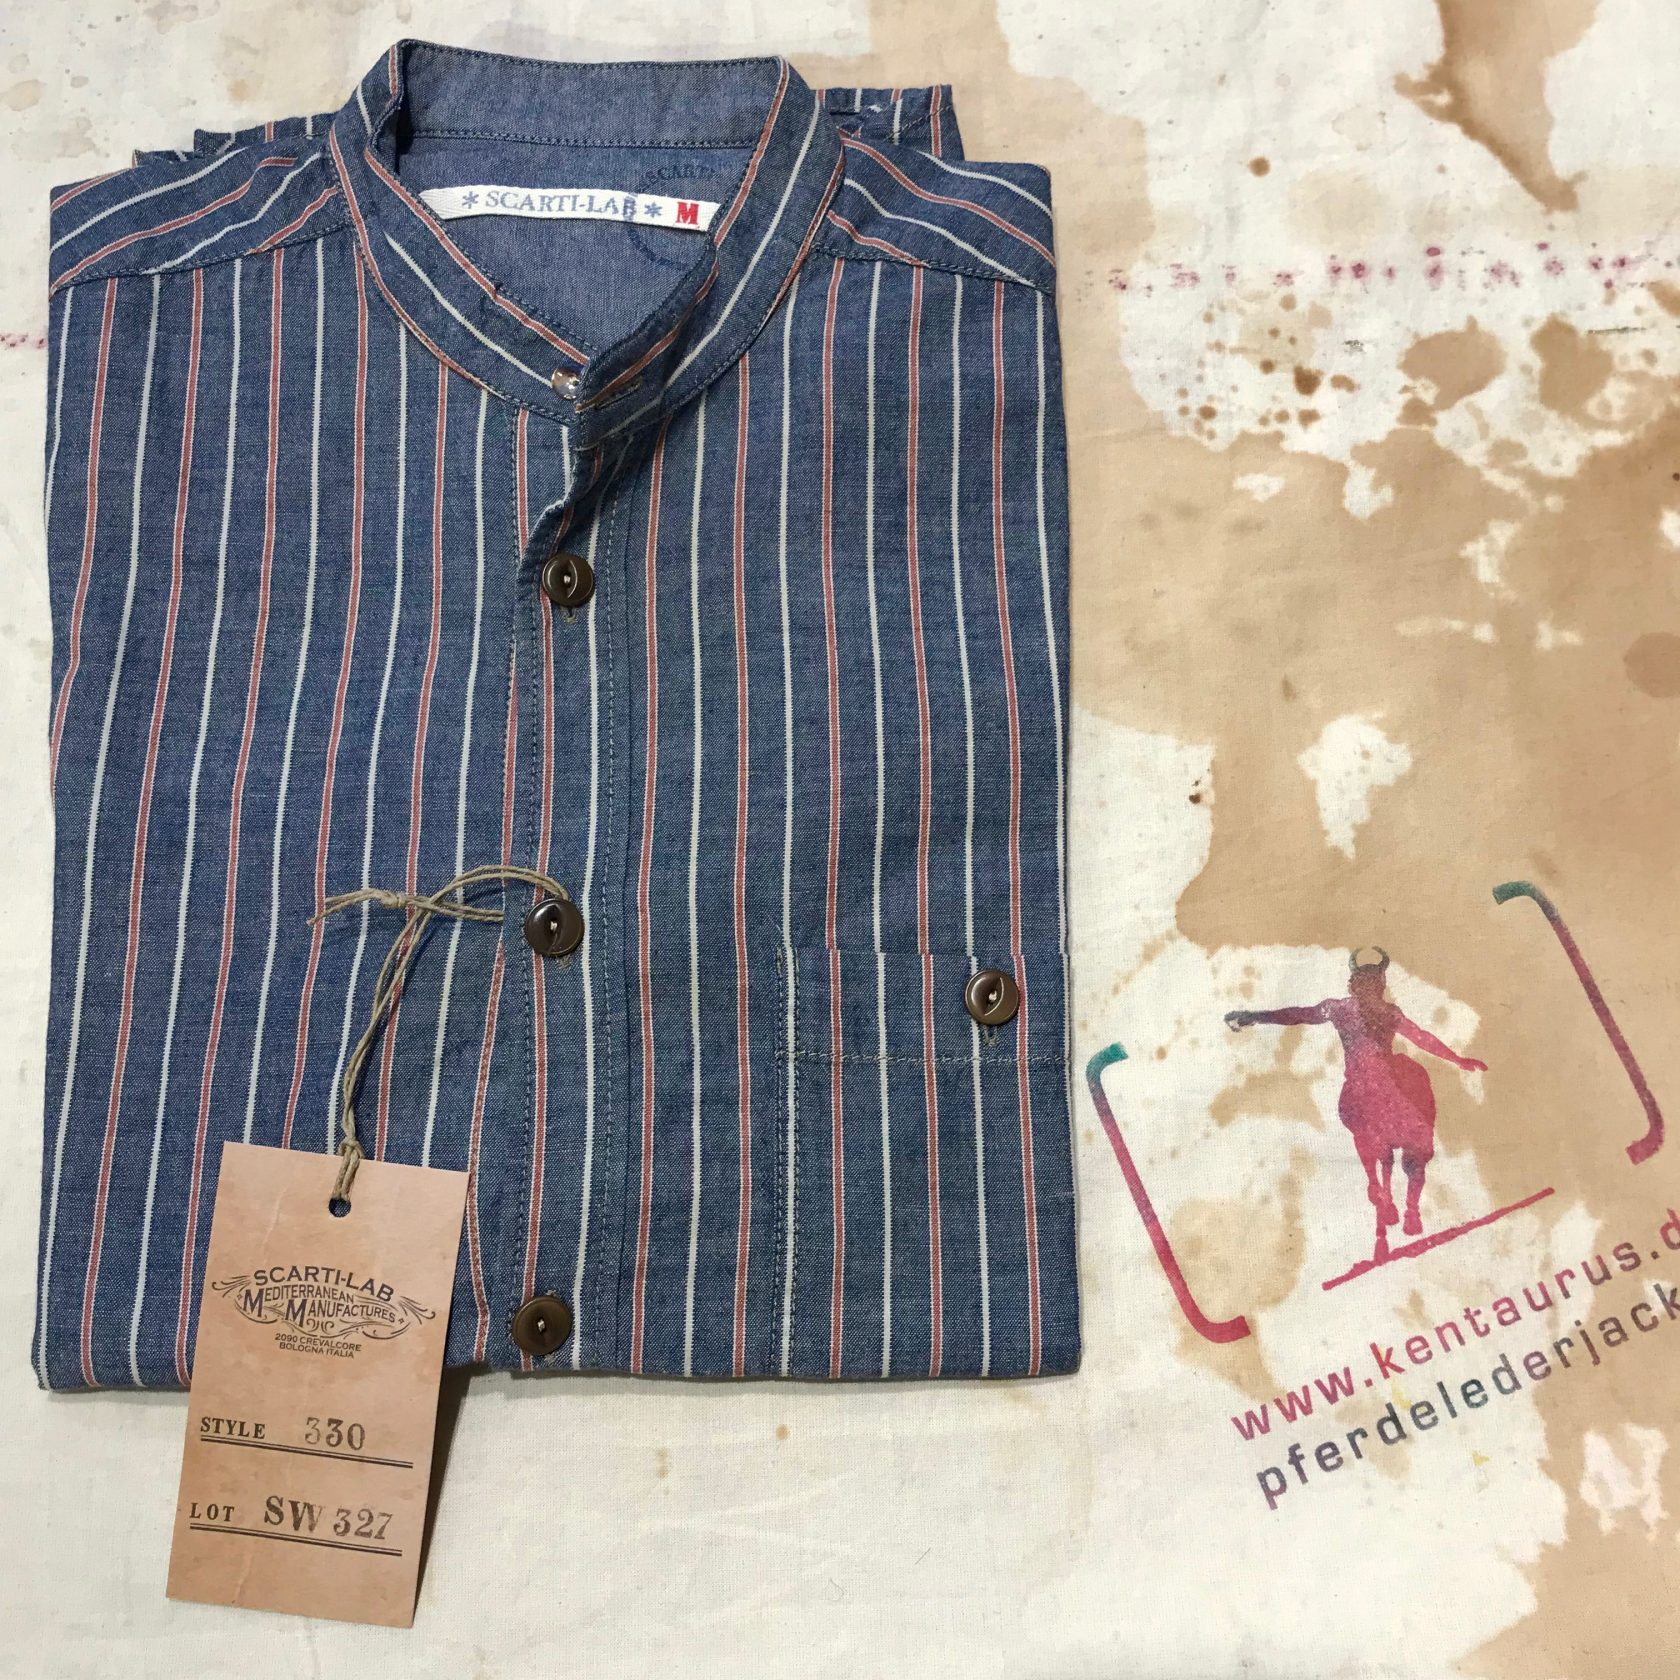 Scartilab blue striped stand collar shirt